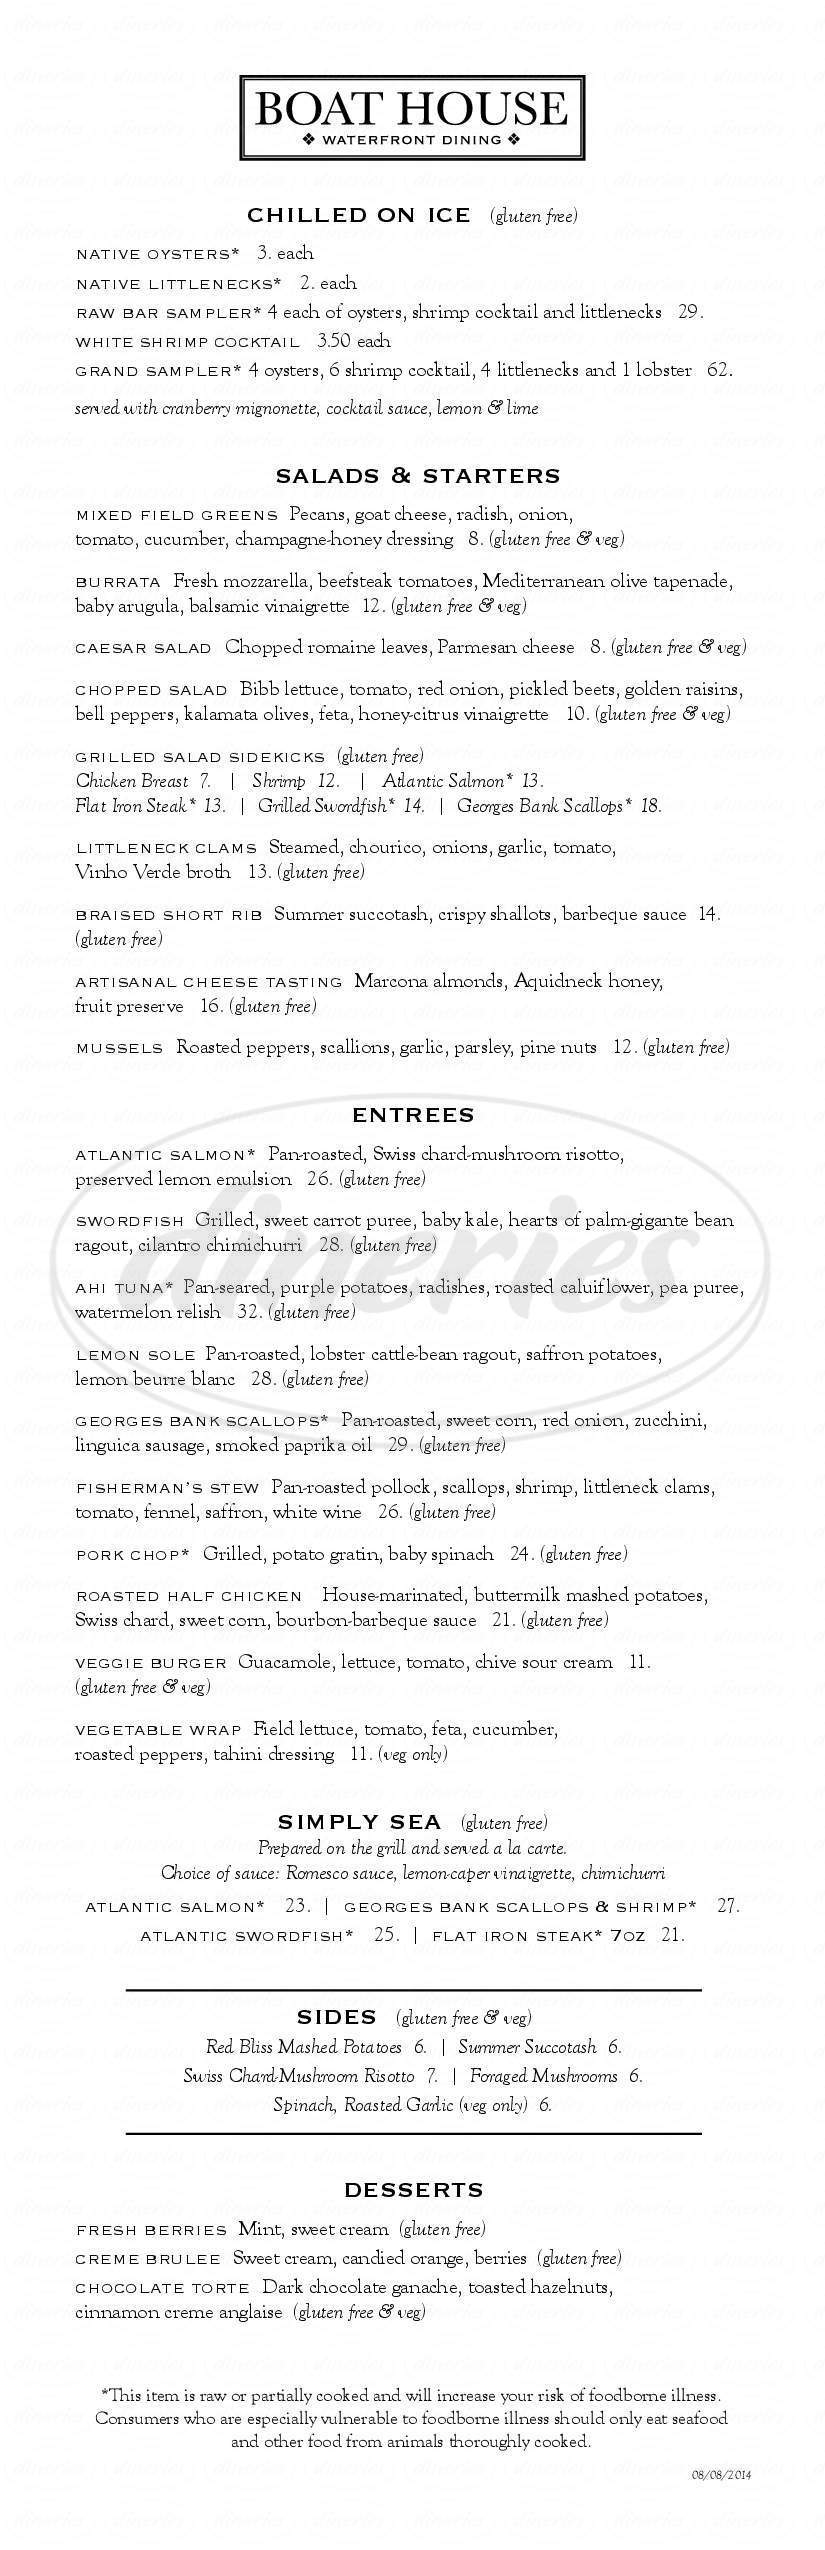 menu for Boat House